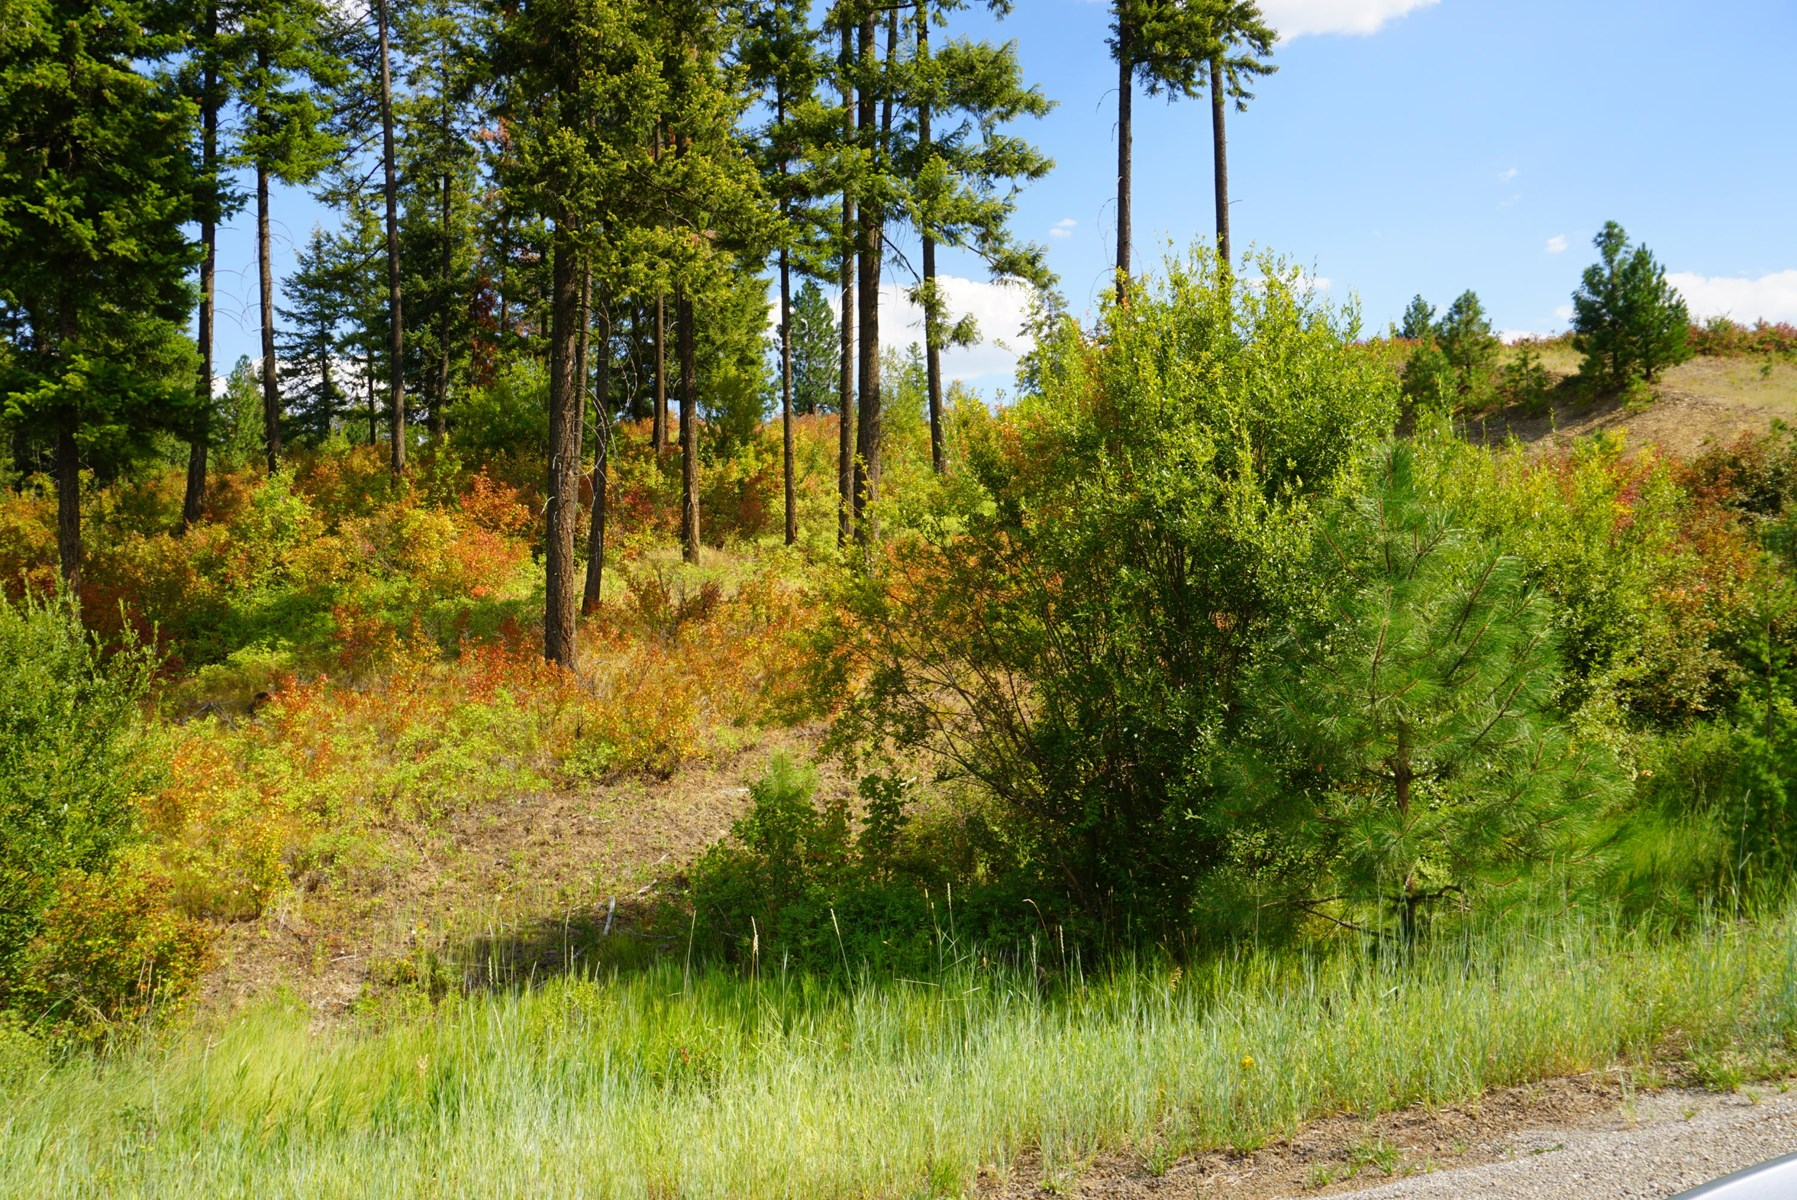 10 acre View Property in Mead, WA overlooking Peone Prairie!